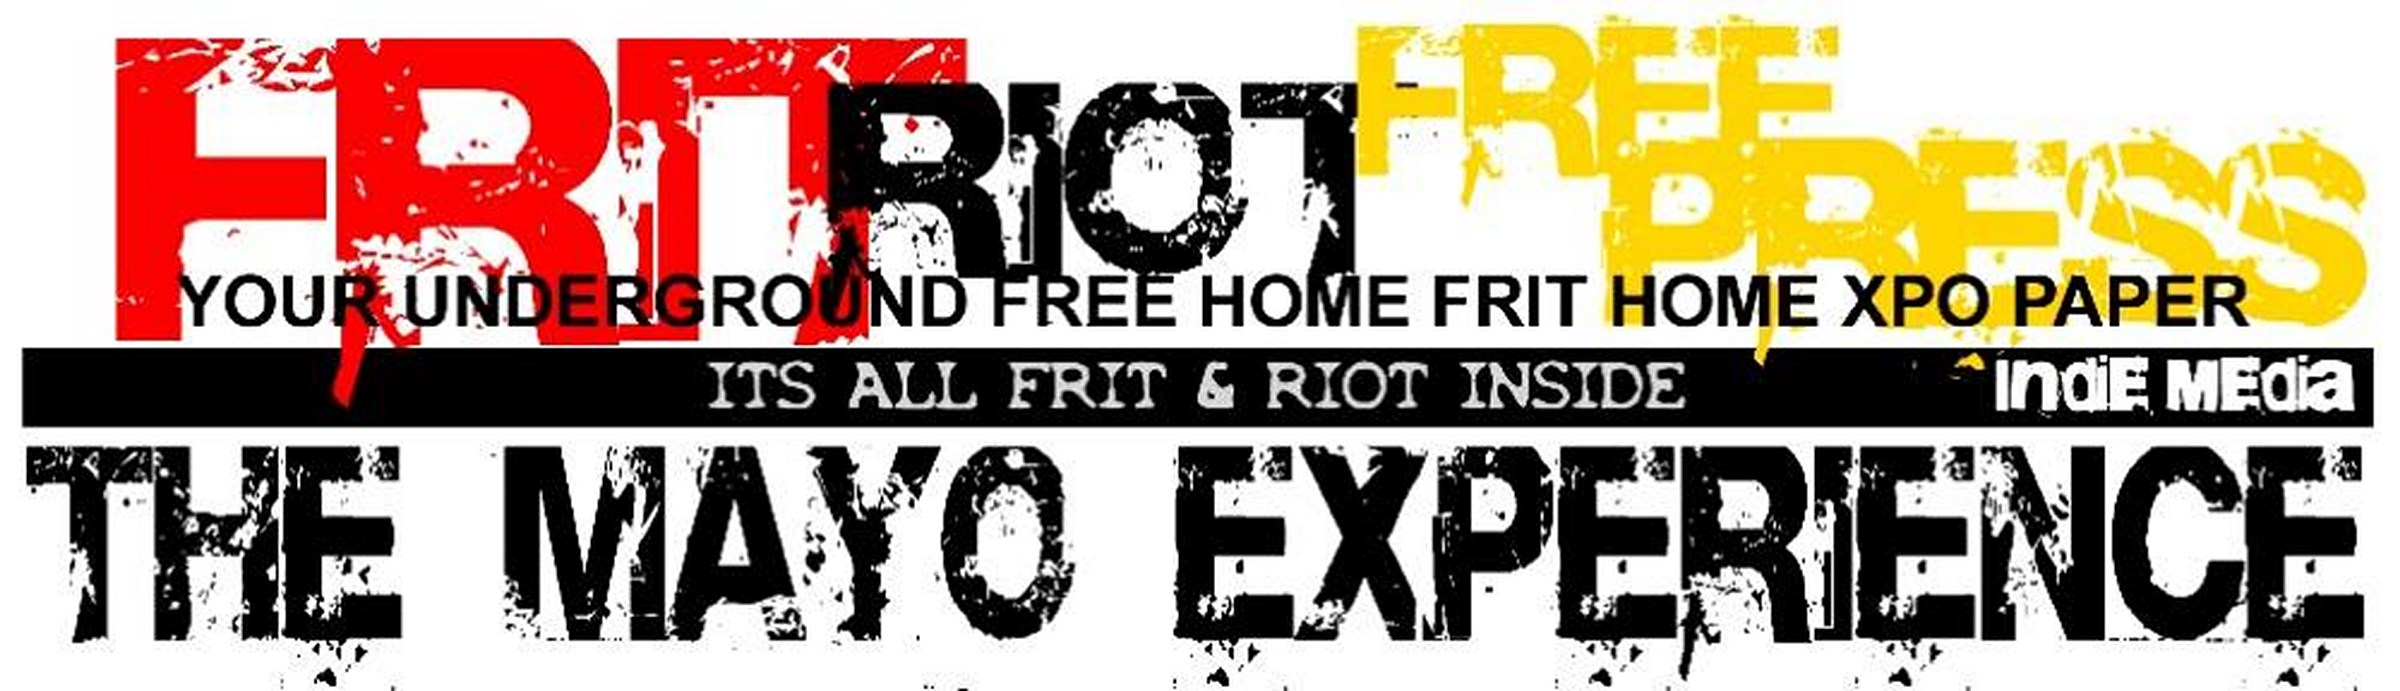 "Home Frit' Home: ""Frit Riot Underground Free Press"", Werner Pans"